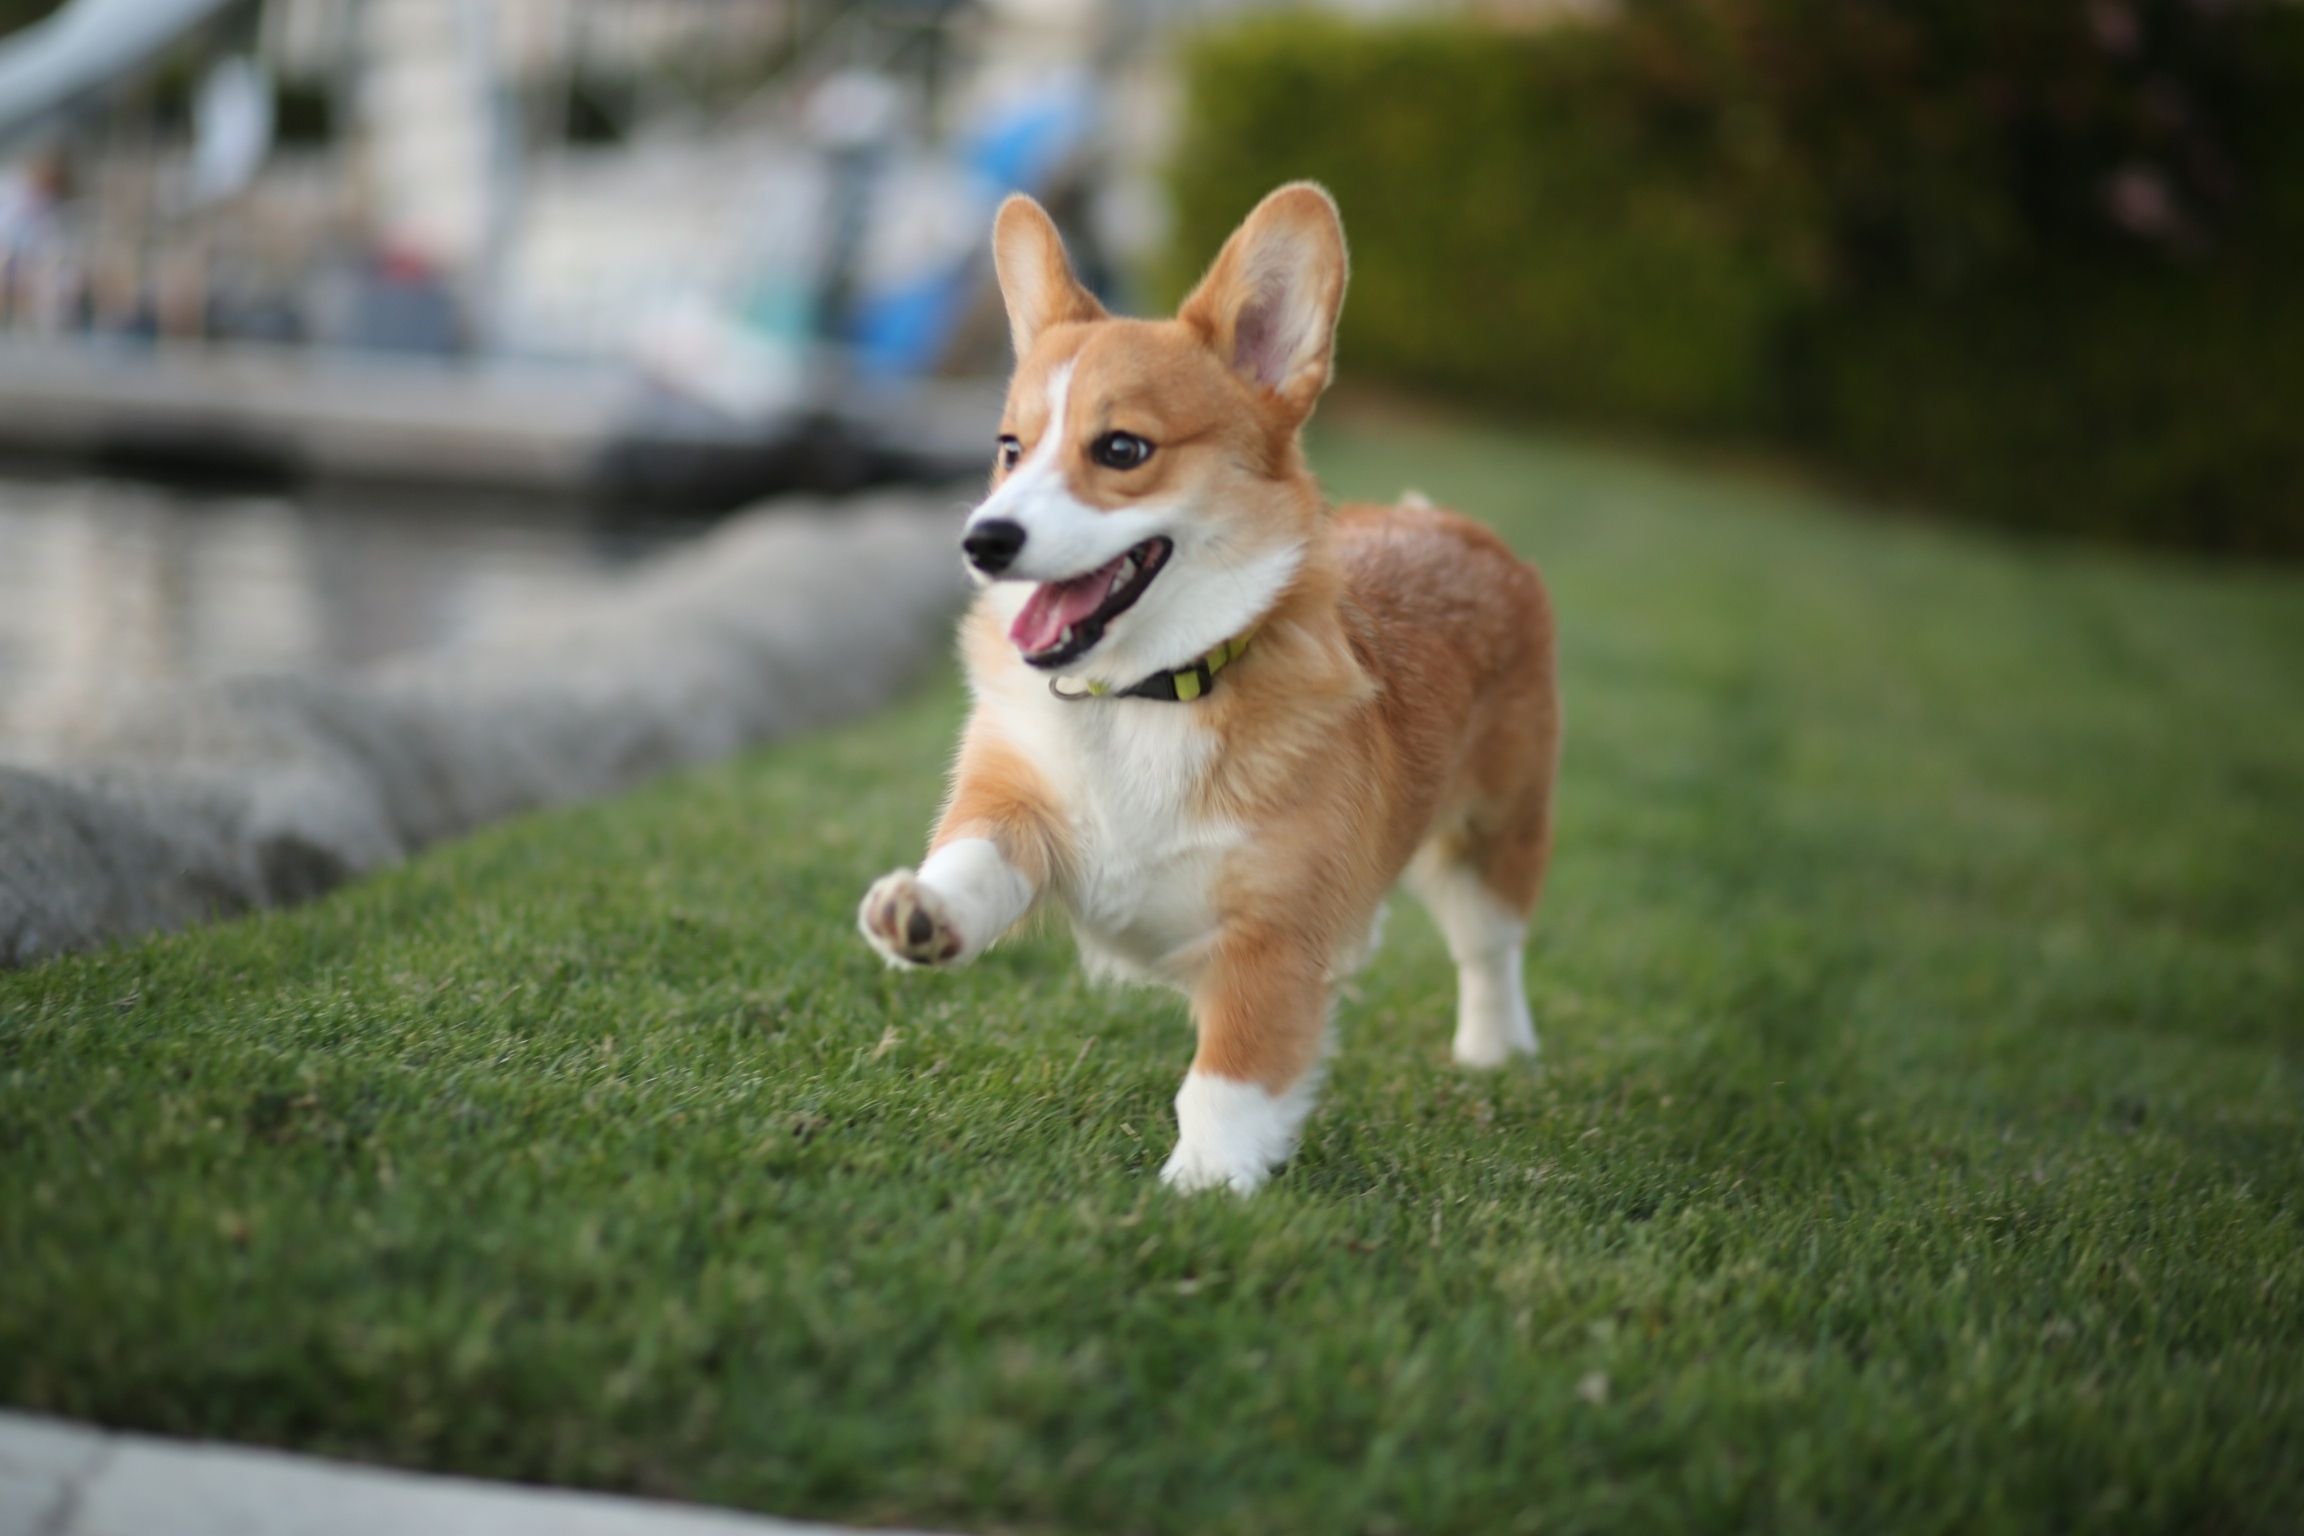 Please Stop What Youre Doing and Watch These Corgis Race